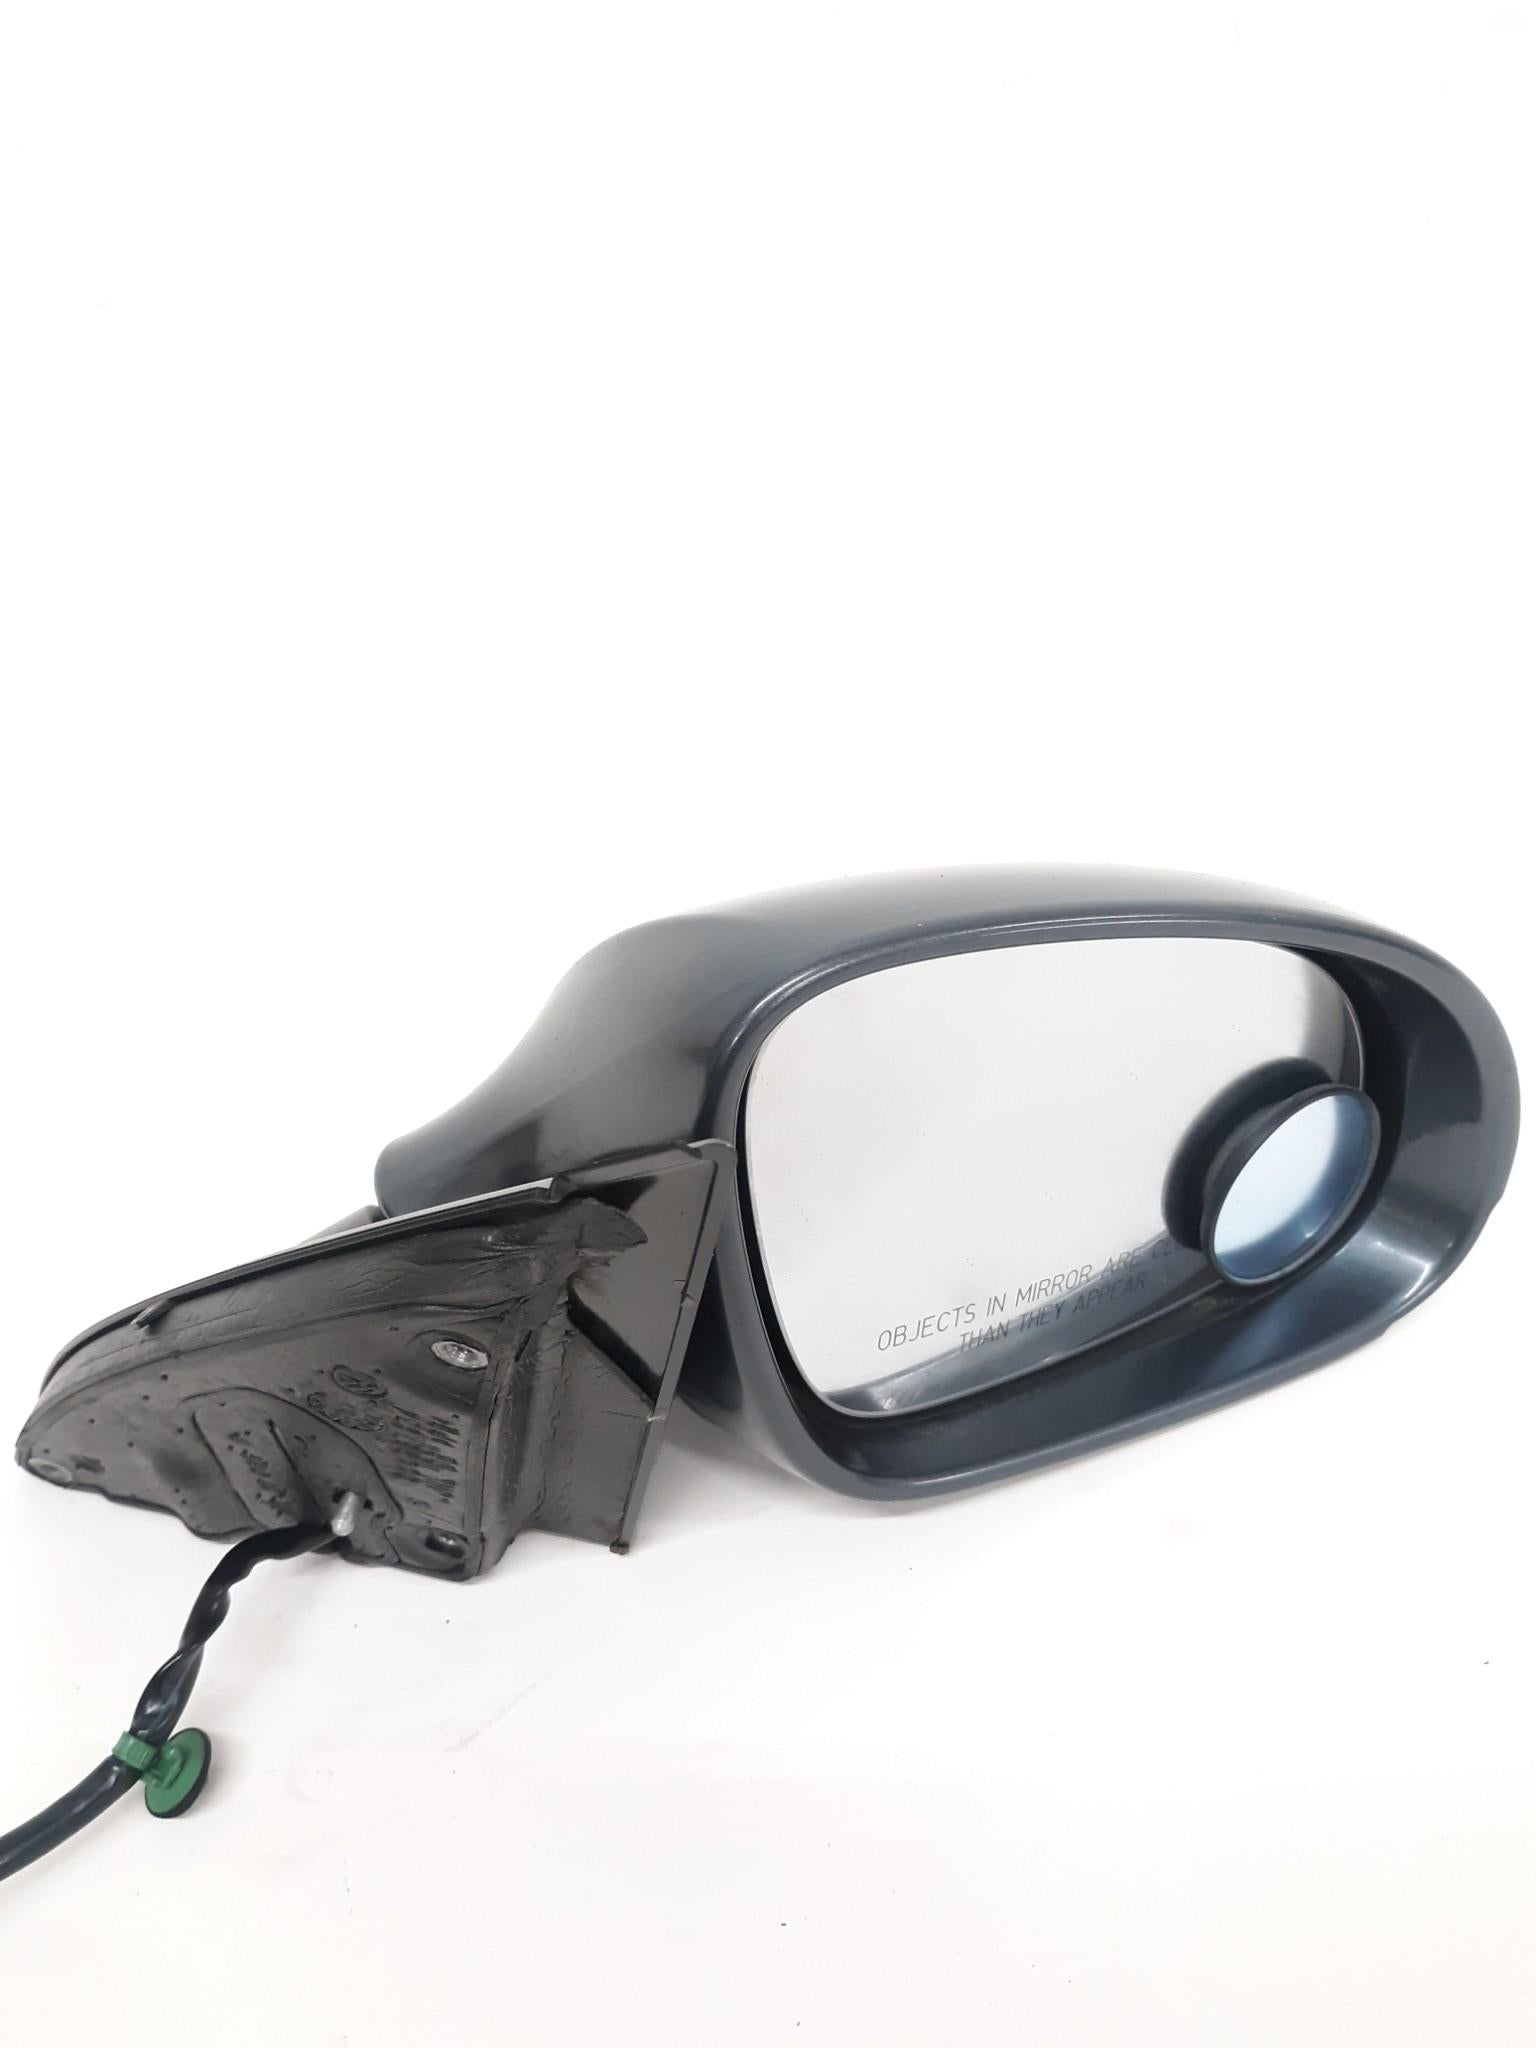 2005-2010 VOLKSWAGEN PASSAT RIGHT PASSENGER SIDE POWER DOOR MIRROR OEM 3C0857934 - CR Auto Parts